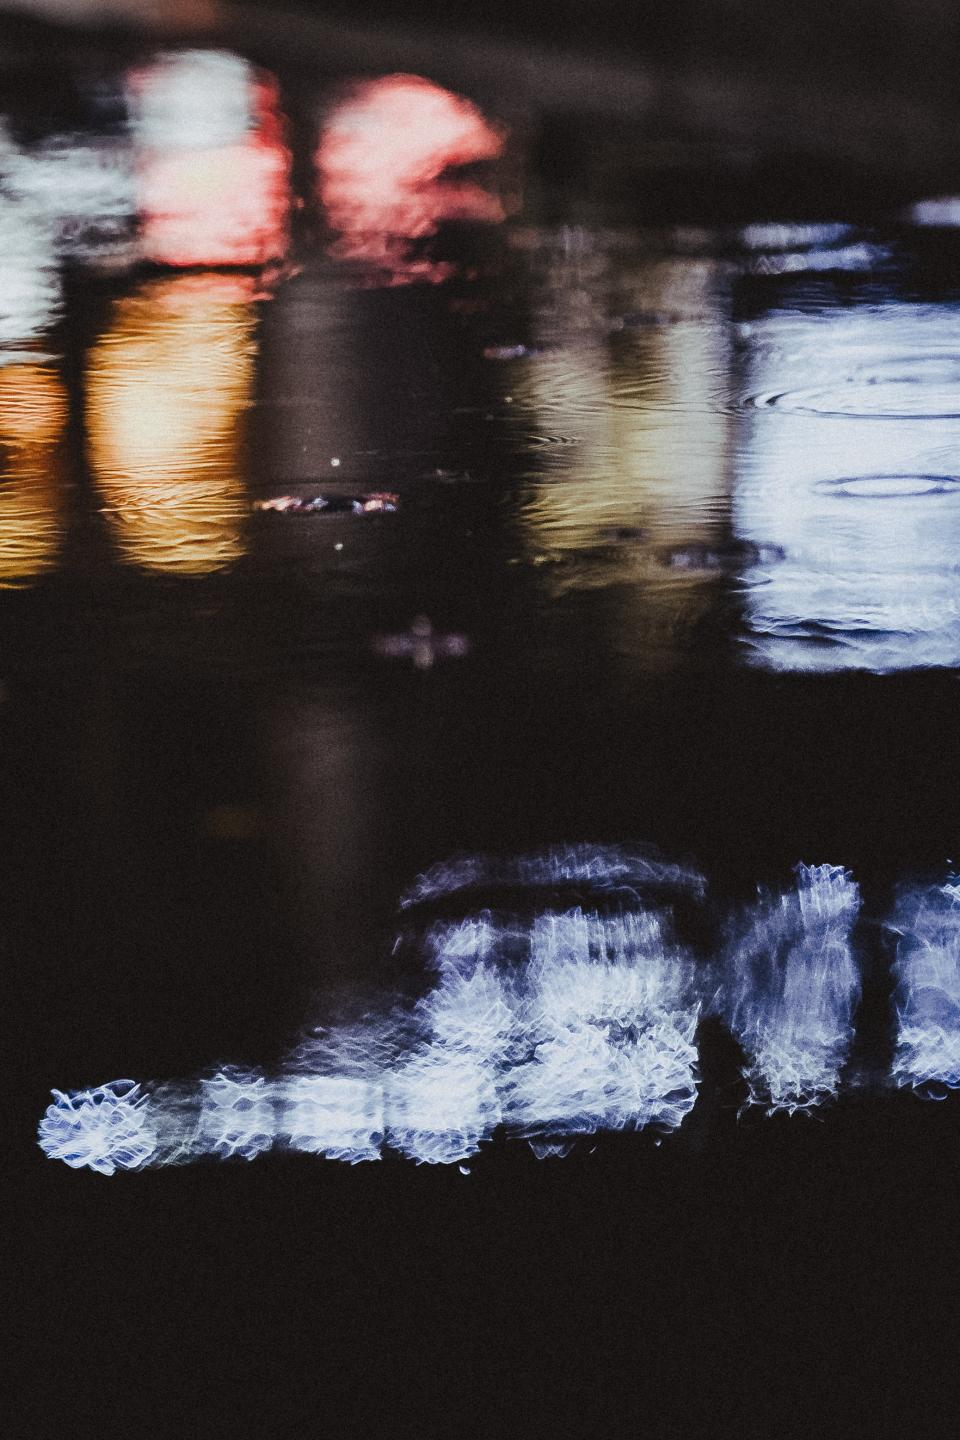 water, drops, liquid, dark, night, raining, nature, lake, lights, reflection